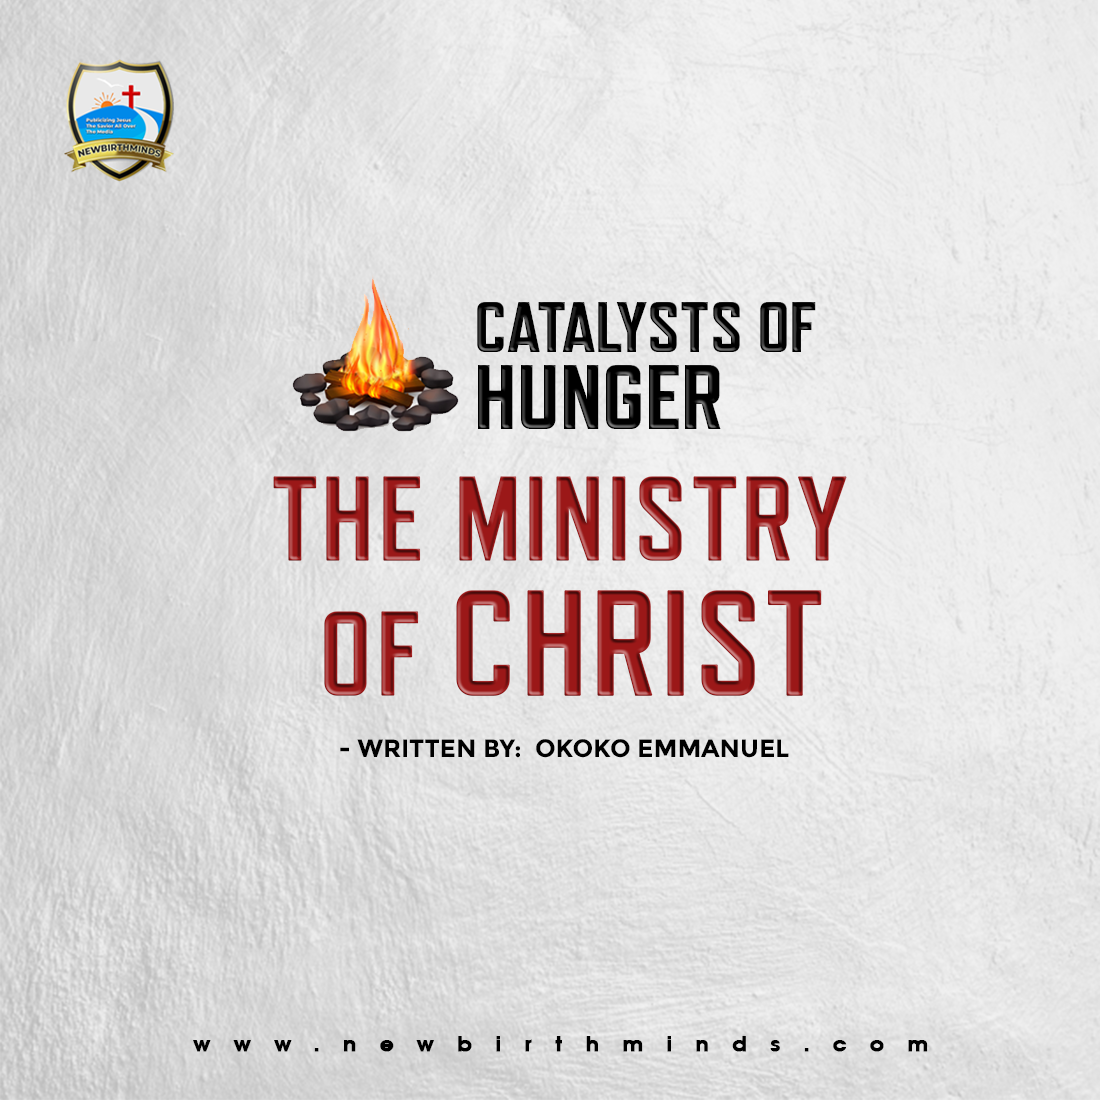 THE MINISTRY OF THE CHRIST – By Okoko Emmanuel